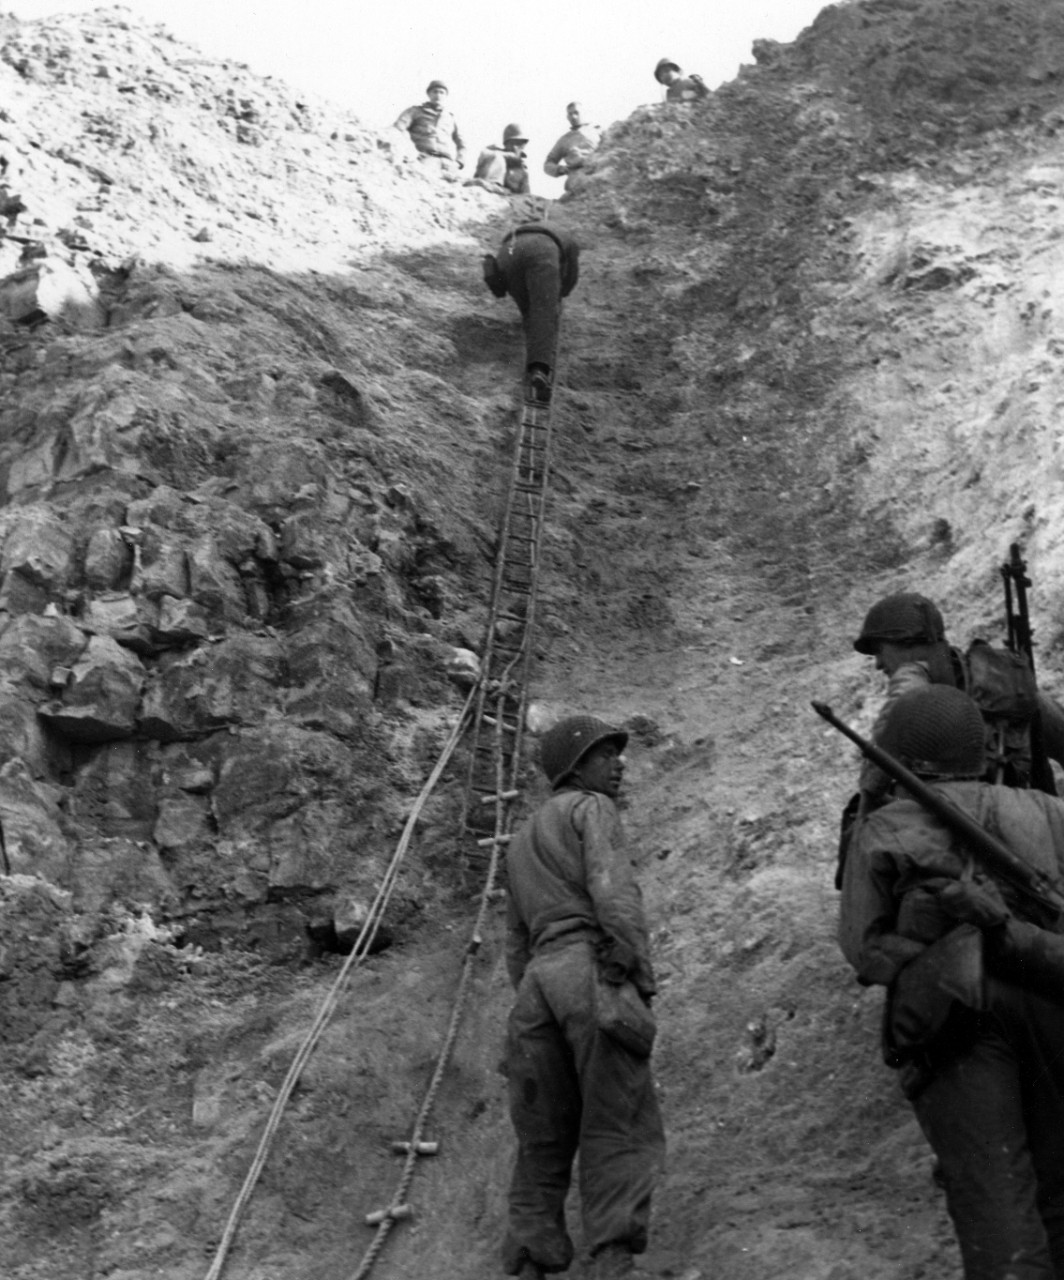 U.S. Army Rangers show off the ladders they used to storm the cliffs at Pointe du Hoc, which they assaulted in support of Omaha Beach landings on D-Day M1 Garand BAR 80-G-45716